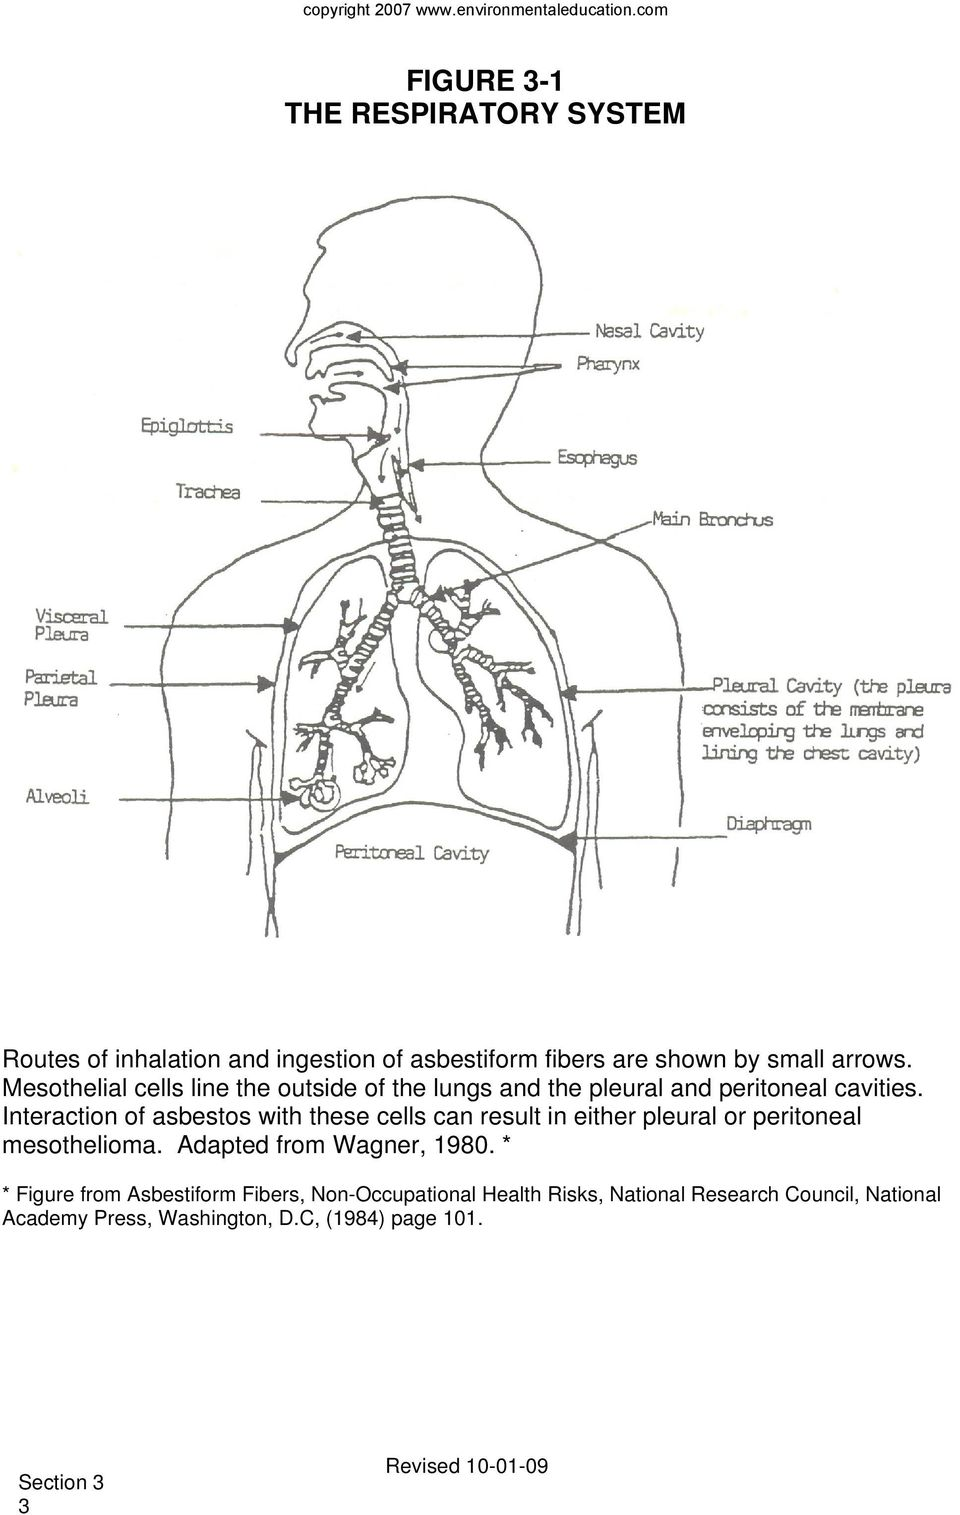 Interaction of asbestos with these cells can result in either pleural or peritoneal mesothelioma. Adapted from Wagner, 1980.